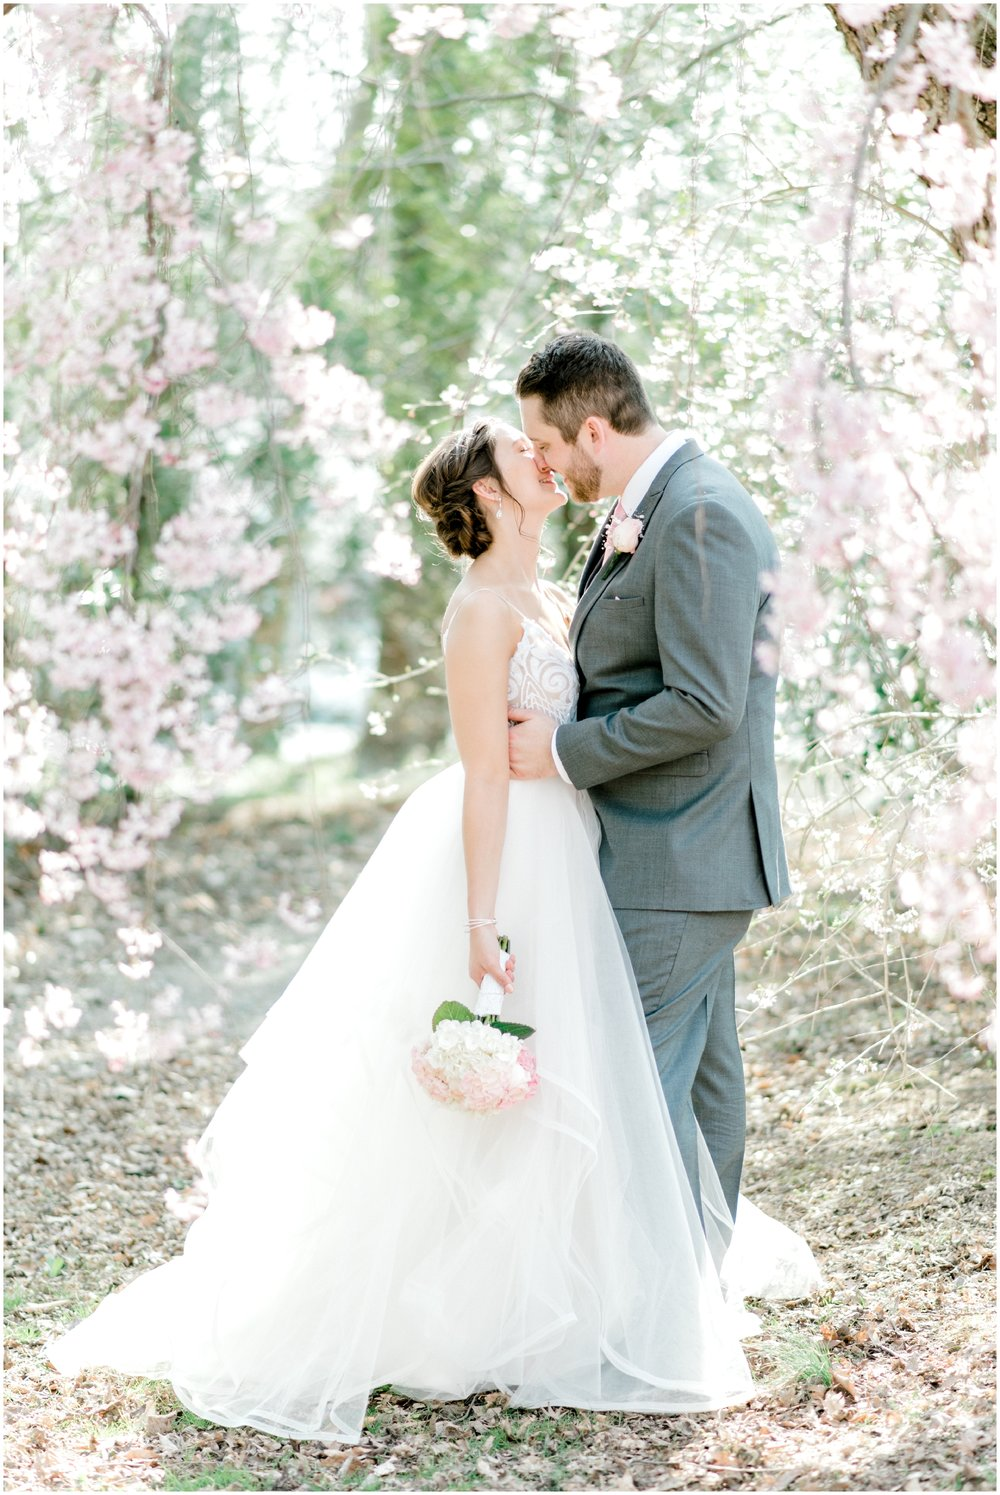 Sunny Spring Wedding at The Carriage House at Rockwood Park in Wilmington, DE- Krista Brackin Photography_0062.jpg